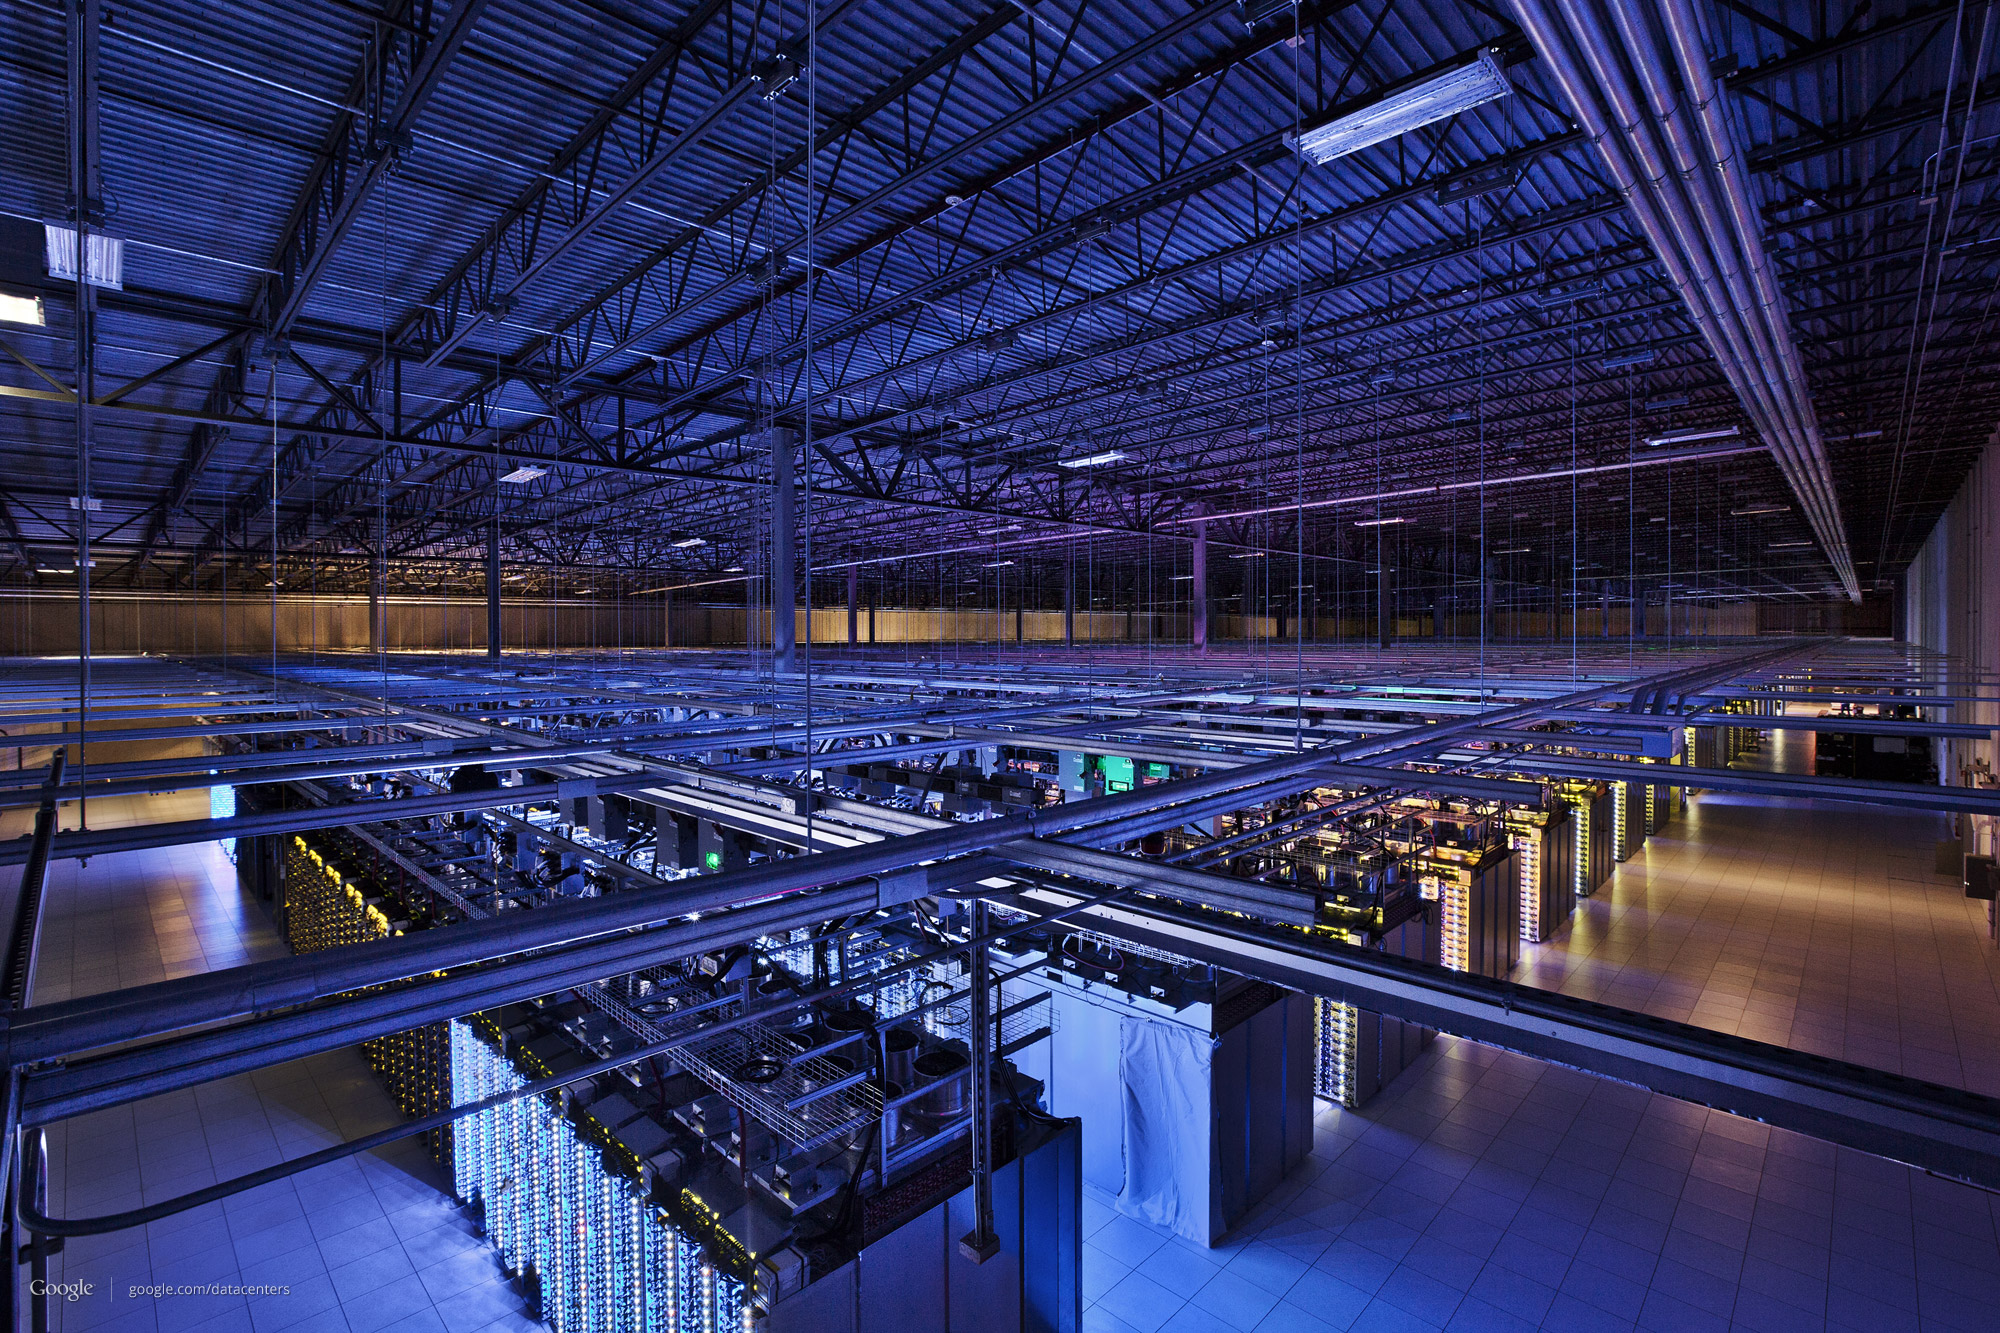 Google's data centers can be vast. This one in Council Bluffs, Iowa, has more than 115,000 square feet of room.